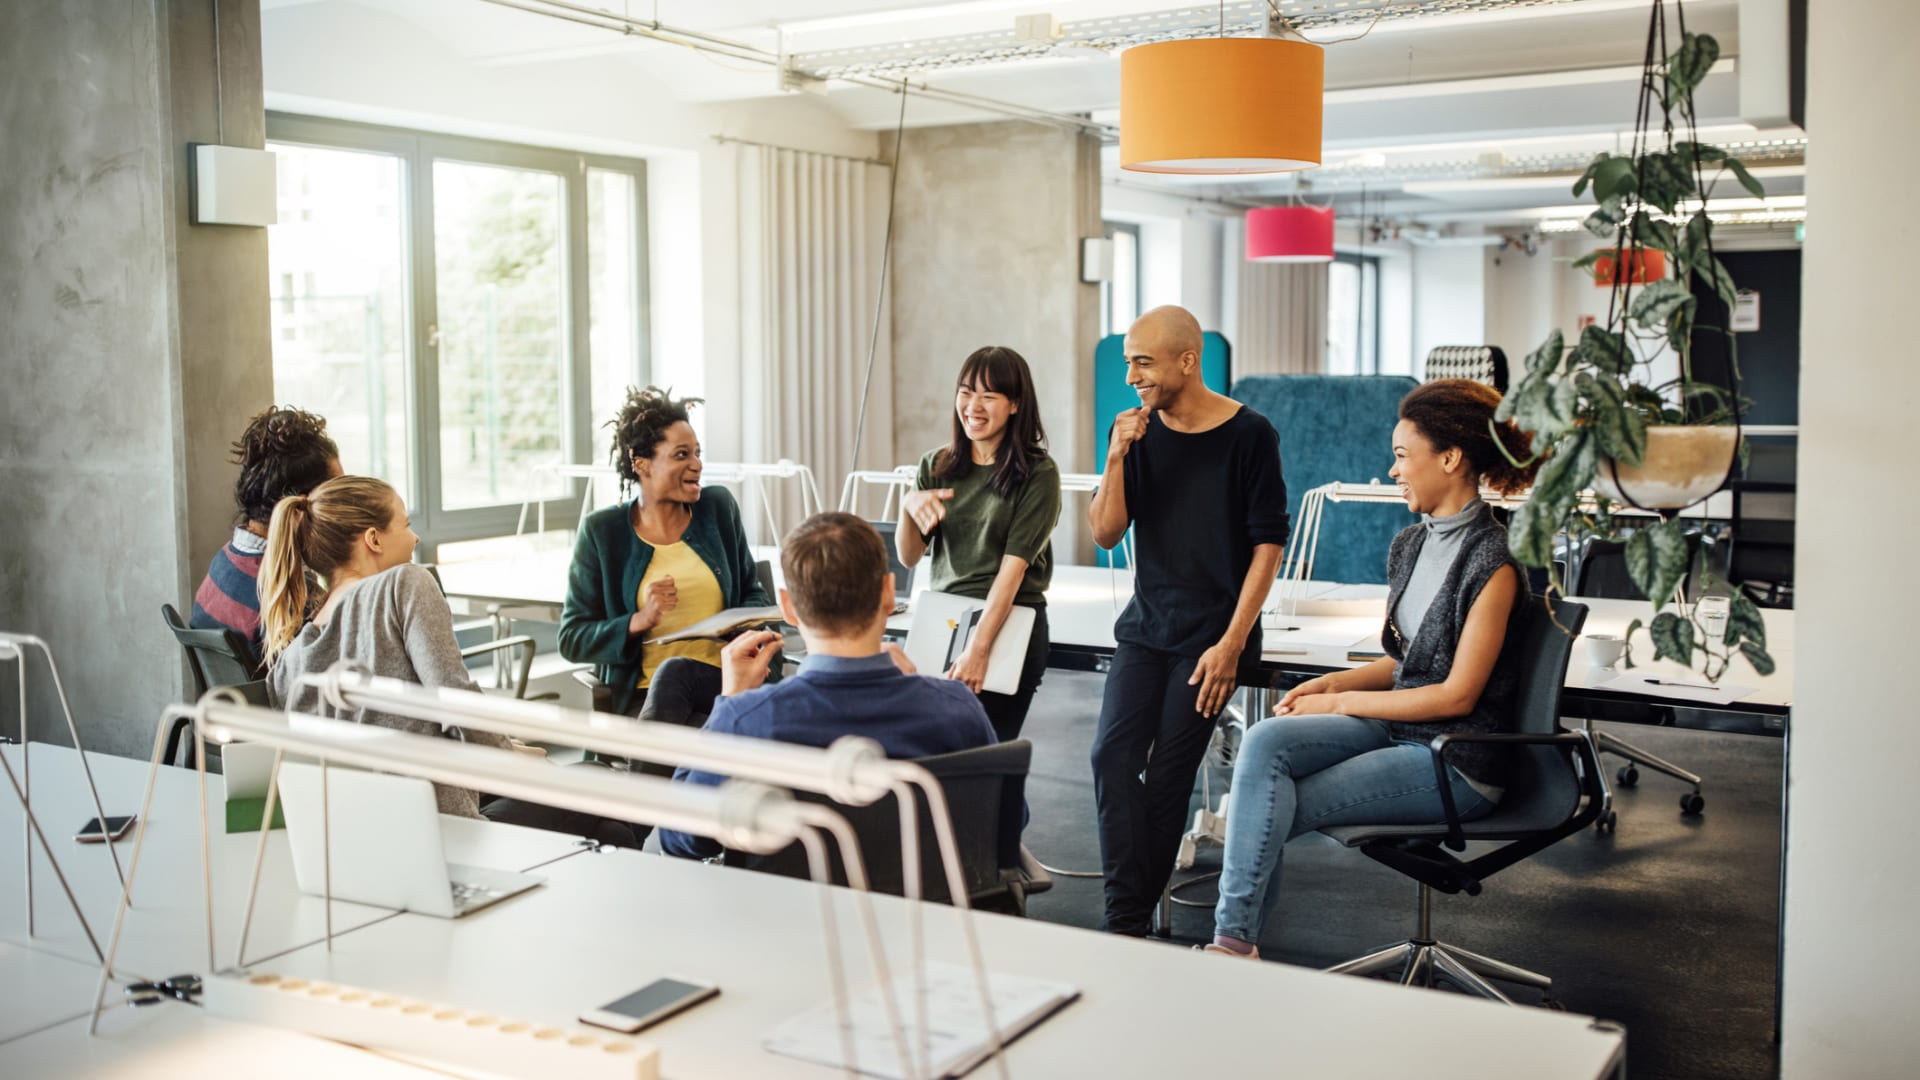 3 Questions to Ask to Improve Your Company's Diversity and Inclusion